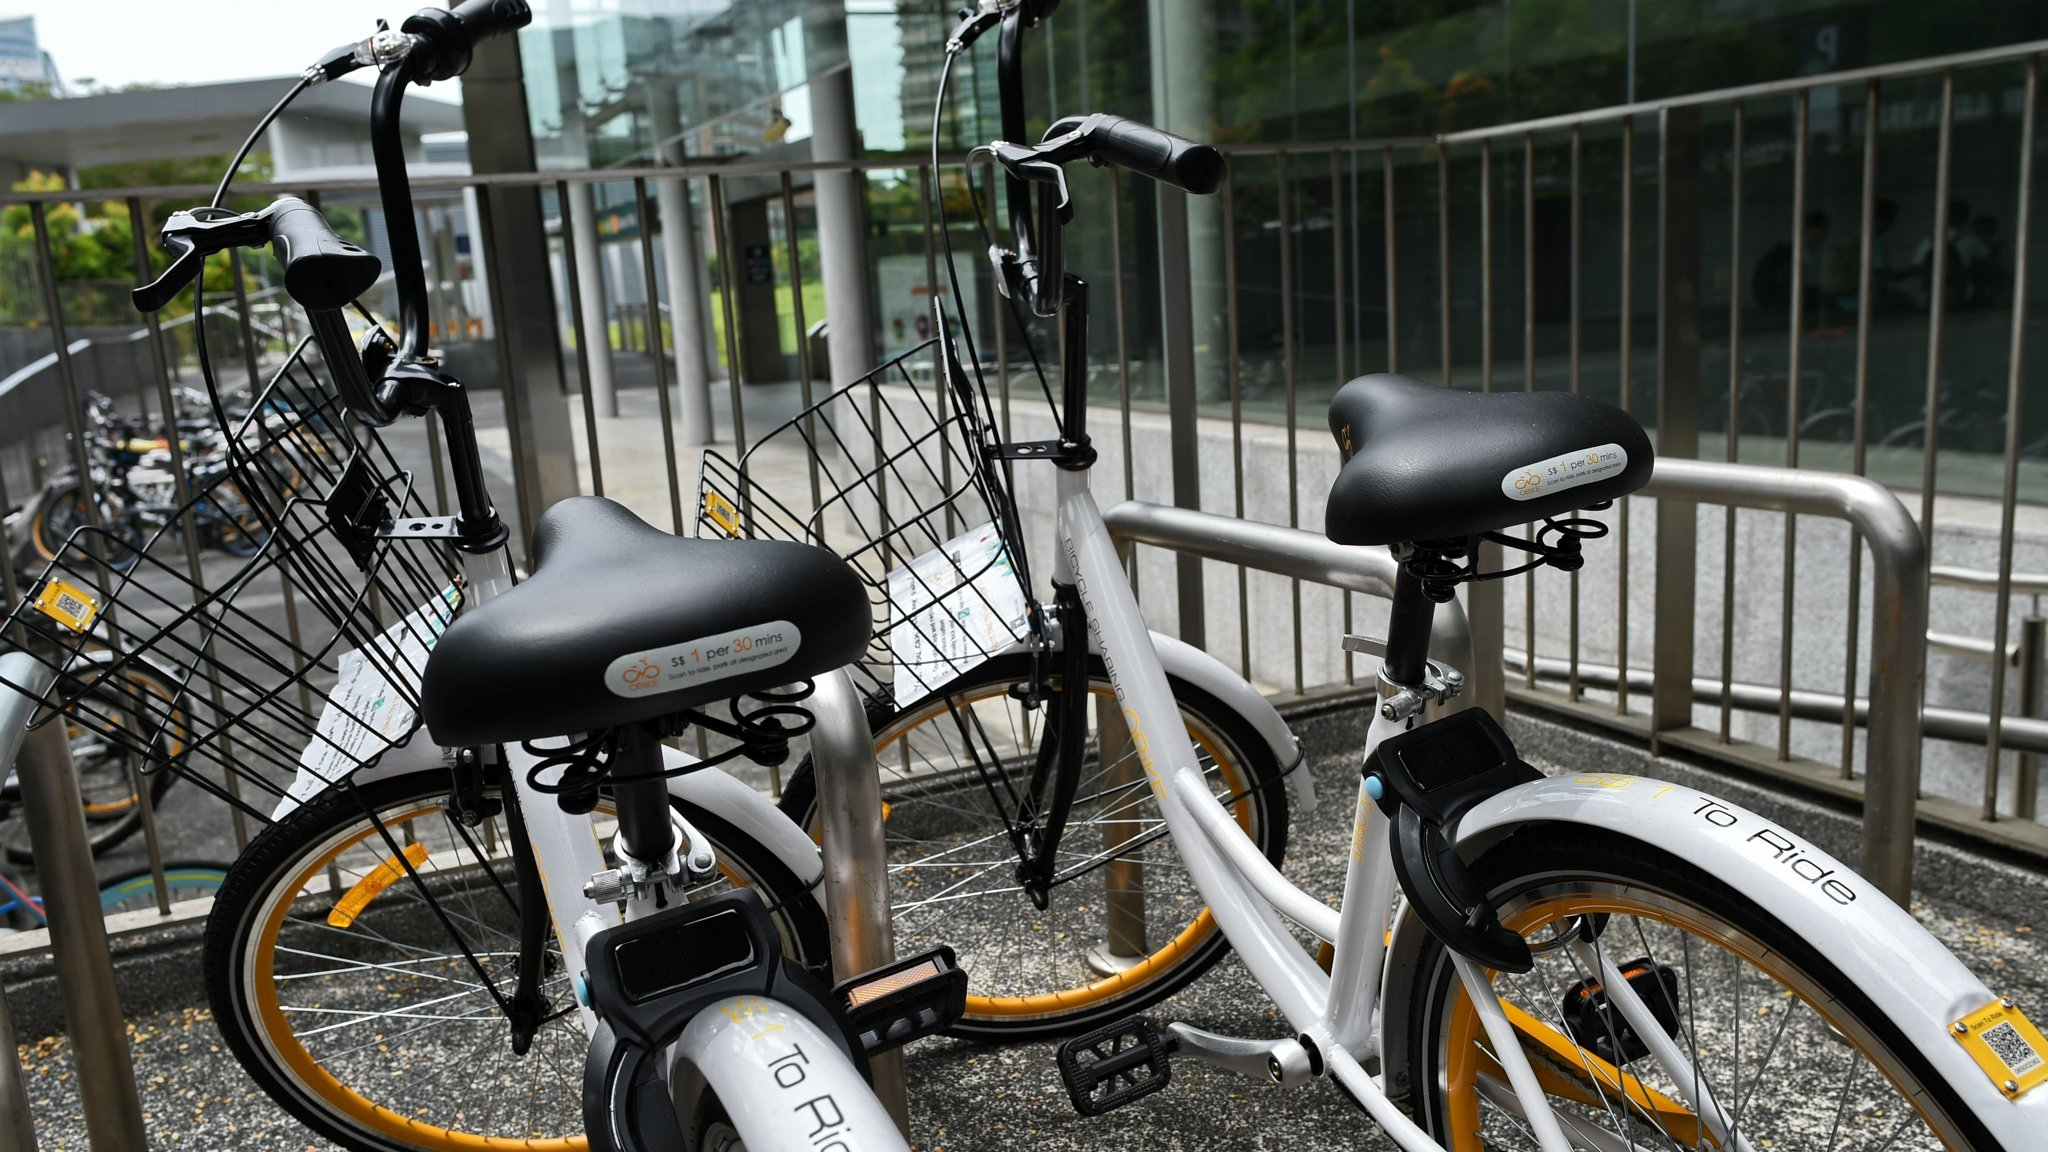 China's bike-sharing battle spreads to Singapore | Financial Times